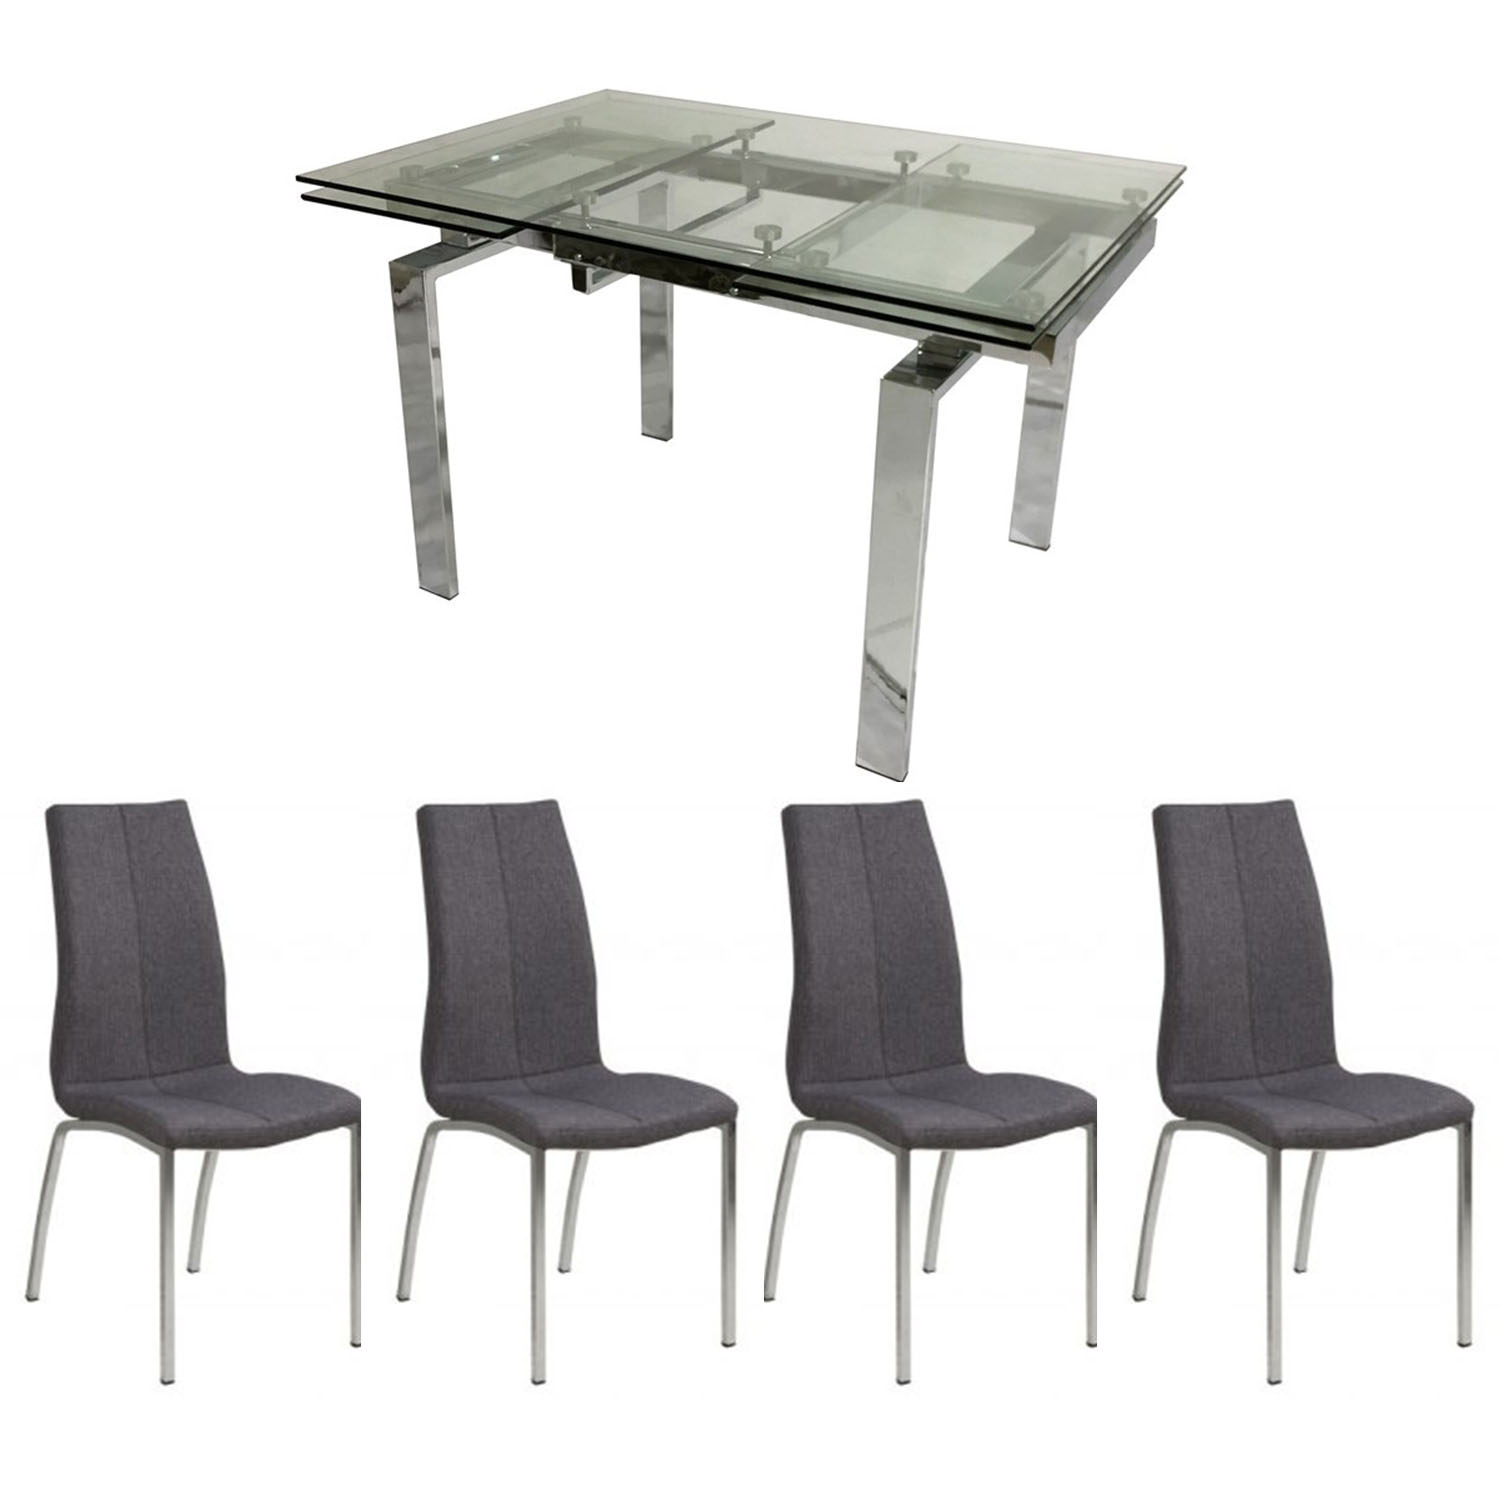 Hamlet Table and x4 Juliette Chairs Dining Set